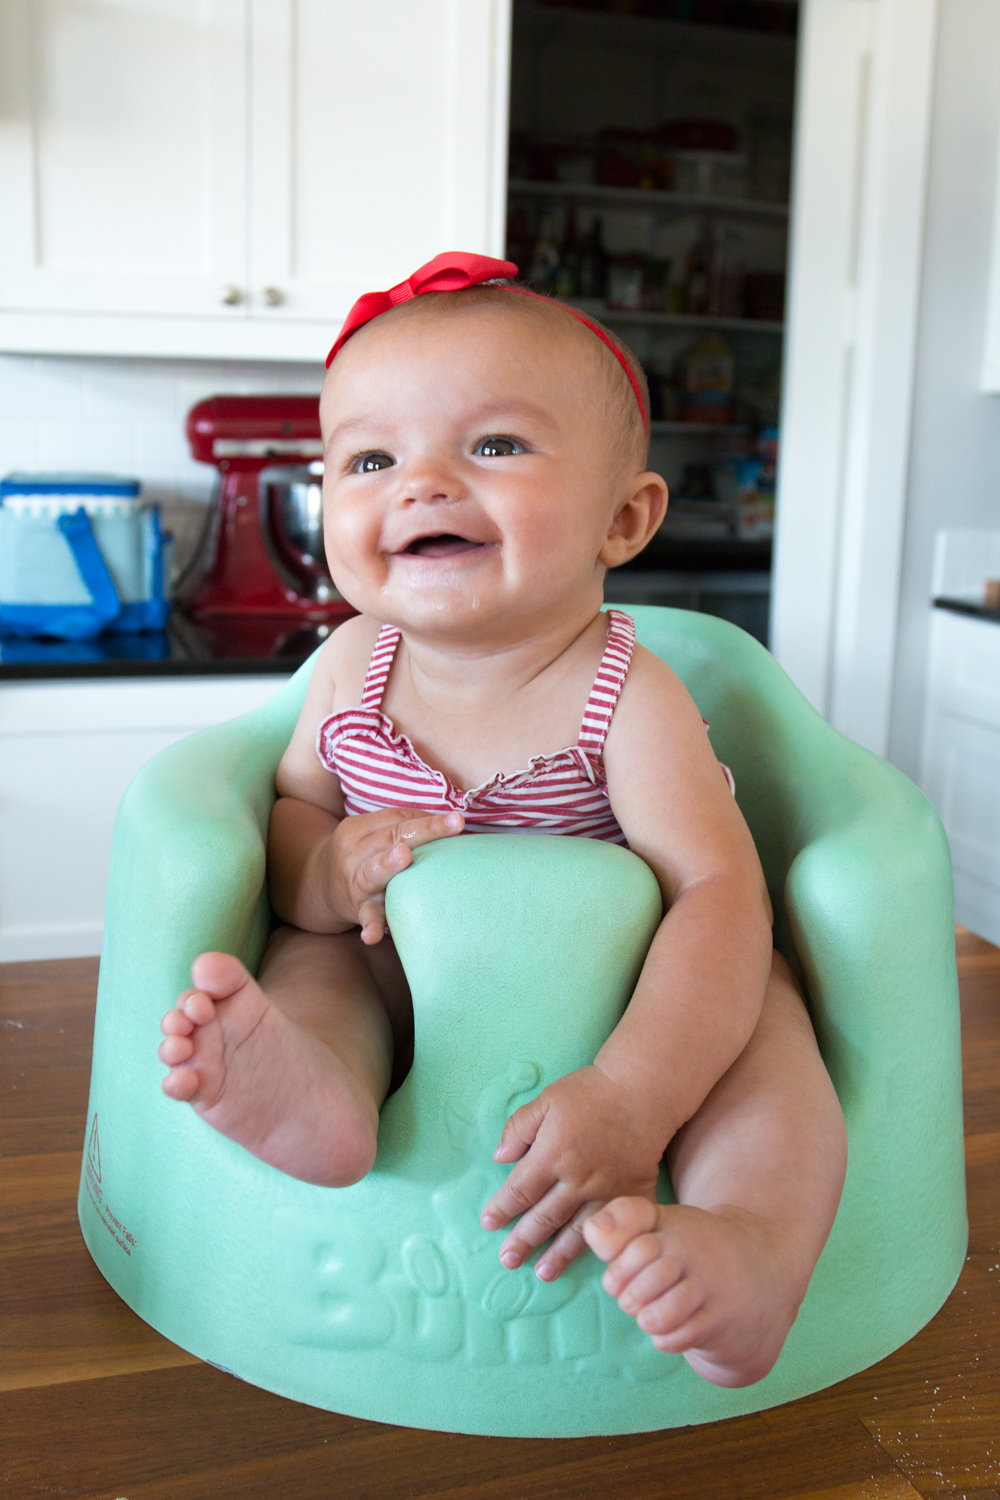 Violet, the happiest baby on earth